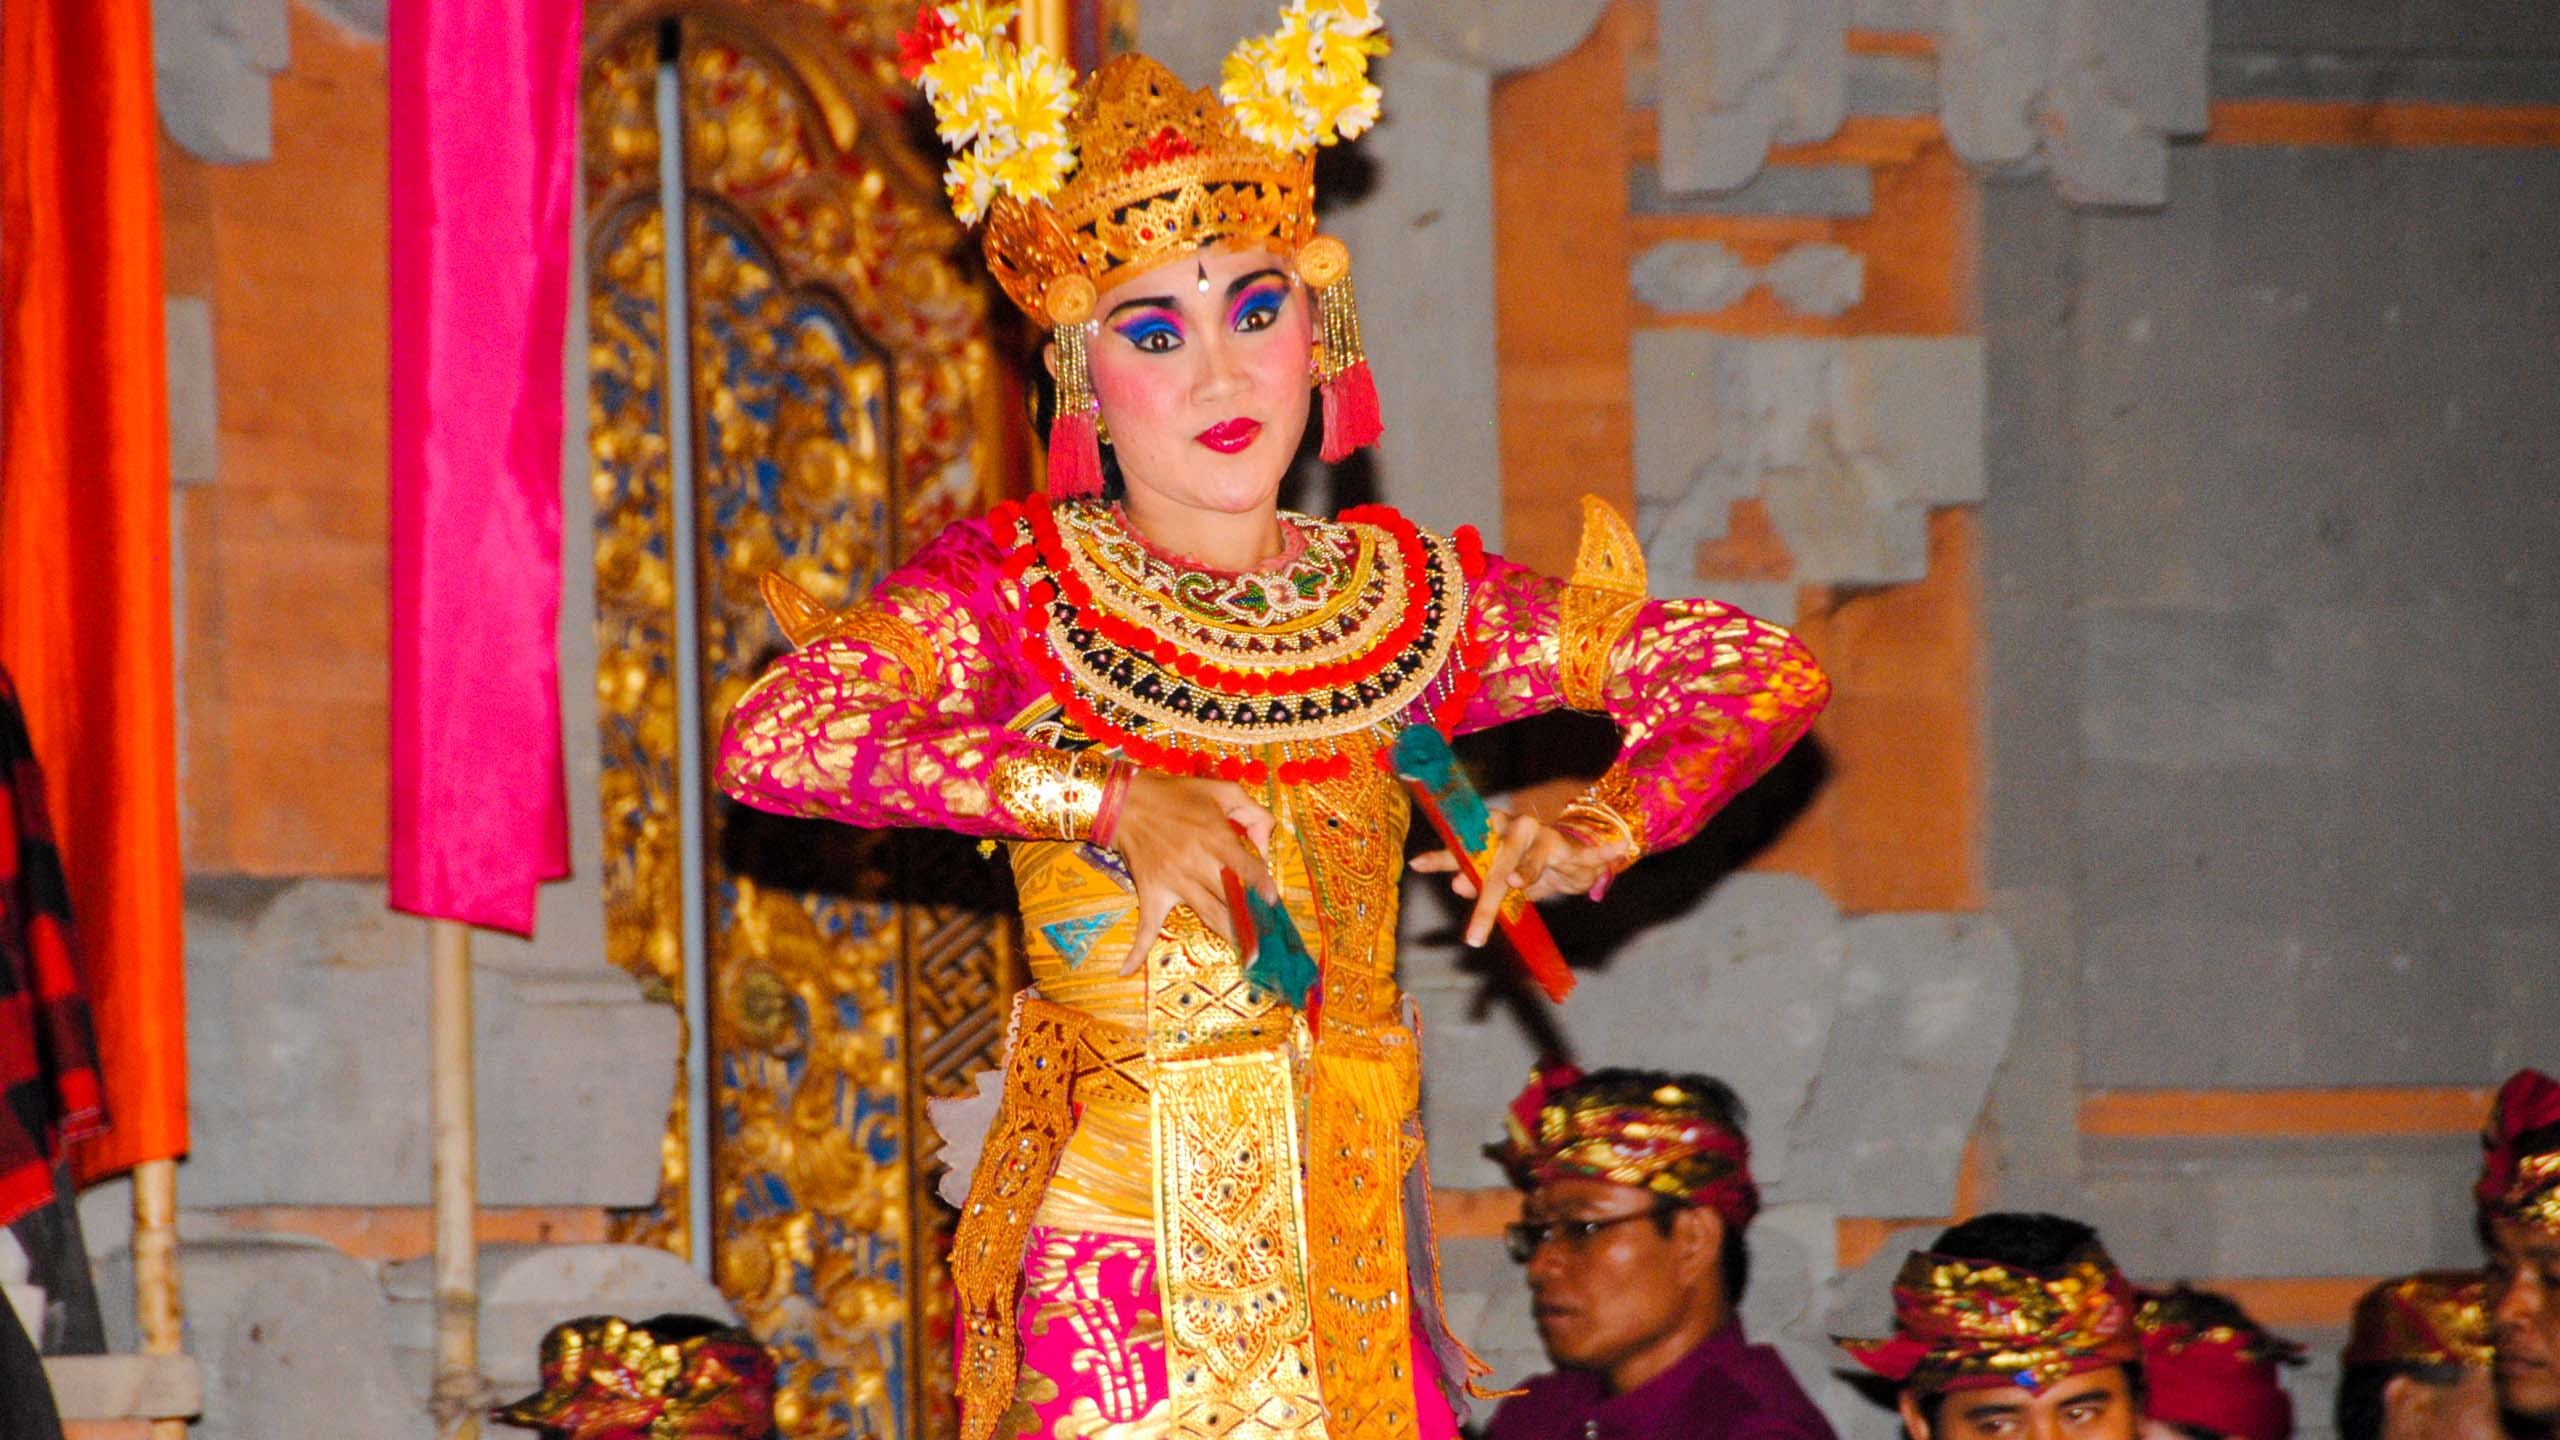 Woman performs dance in Indonesia